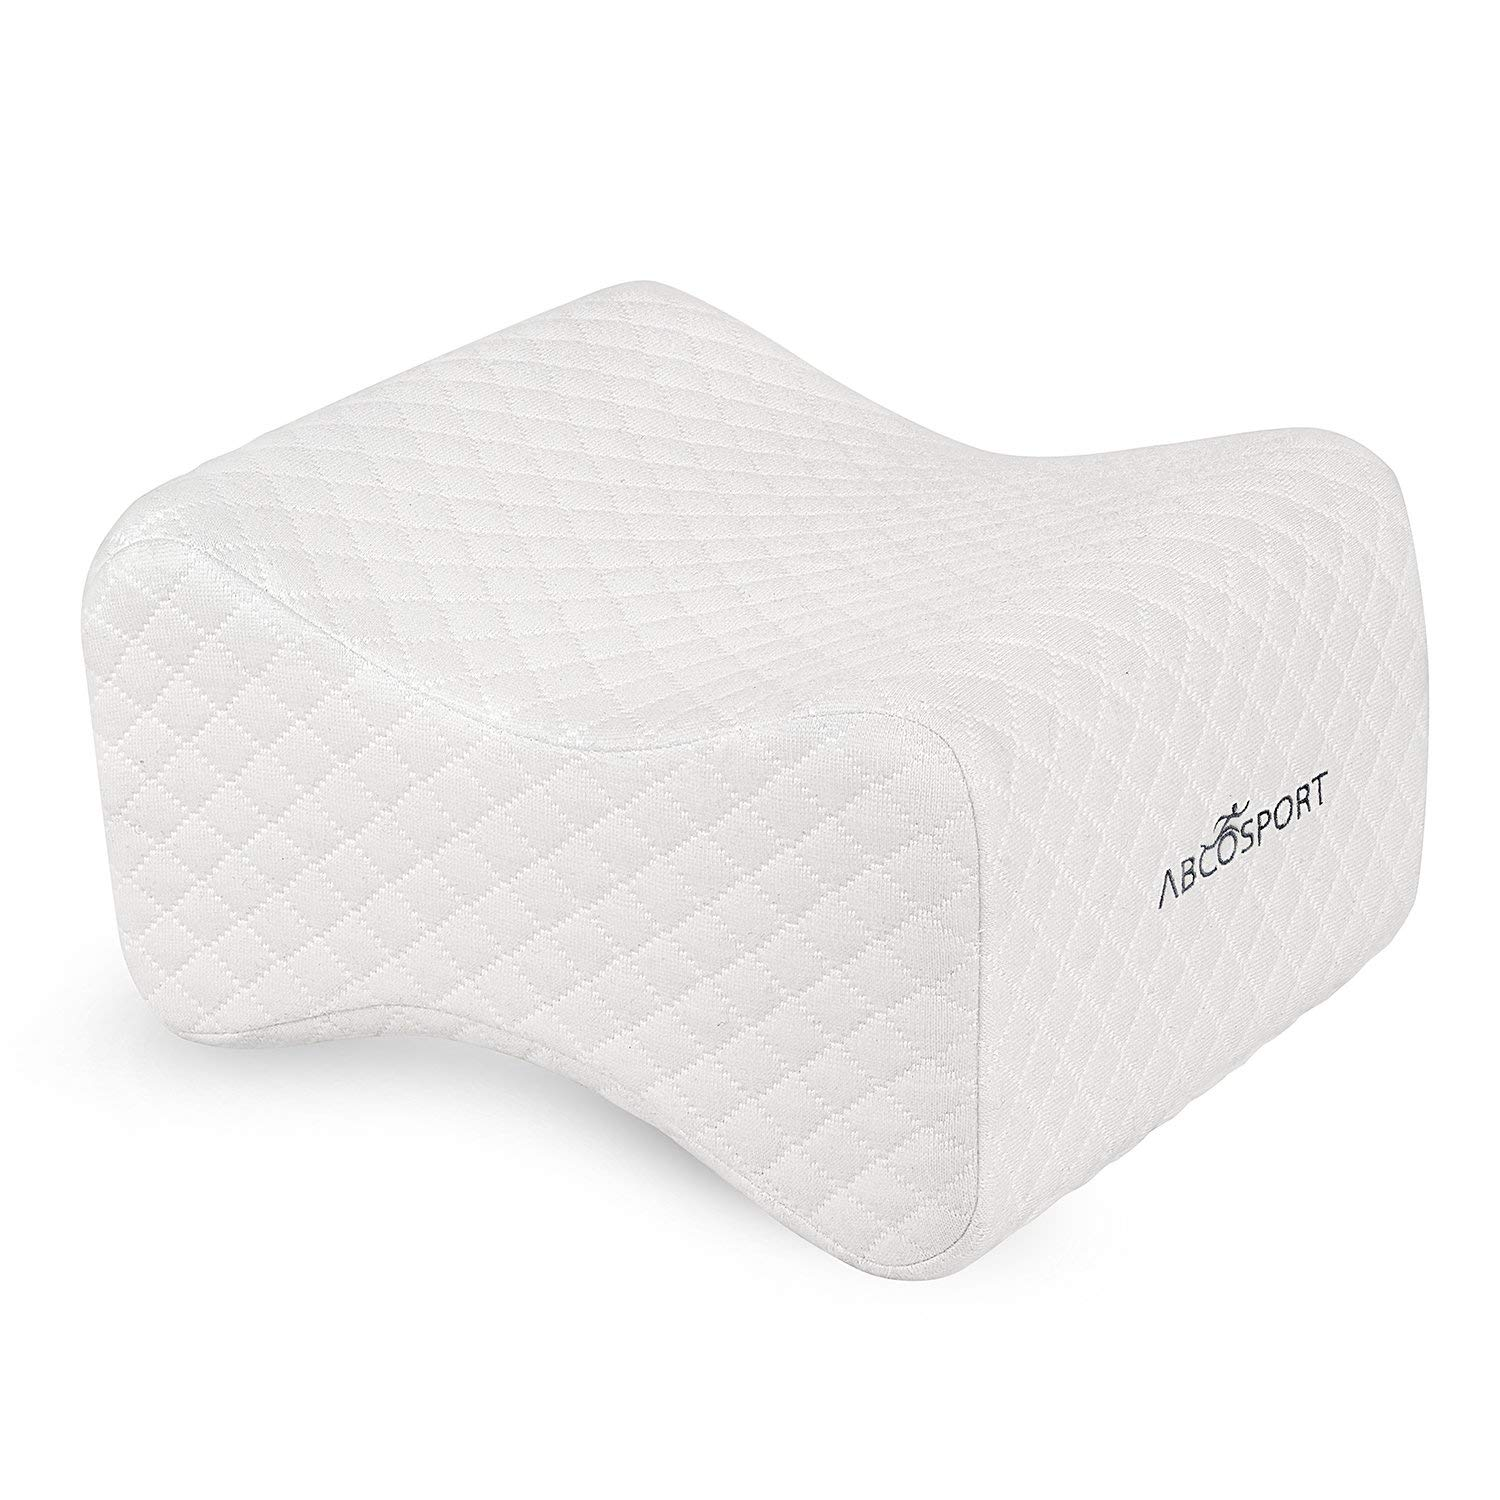 Knee pillow – ideal choice for hip, back, leg, knee pain, side sleepers, pregnancy & right spine alignment – premium comfortable memory foam wedge contour w washable cover & storage bag (white)